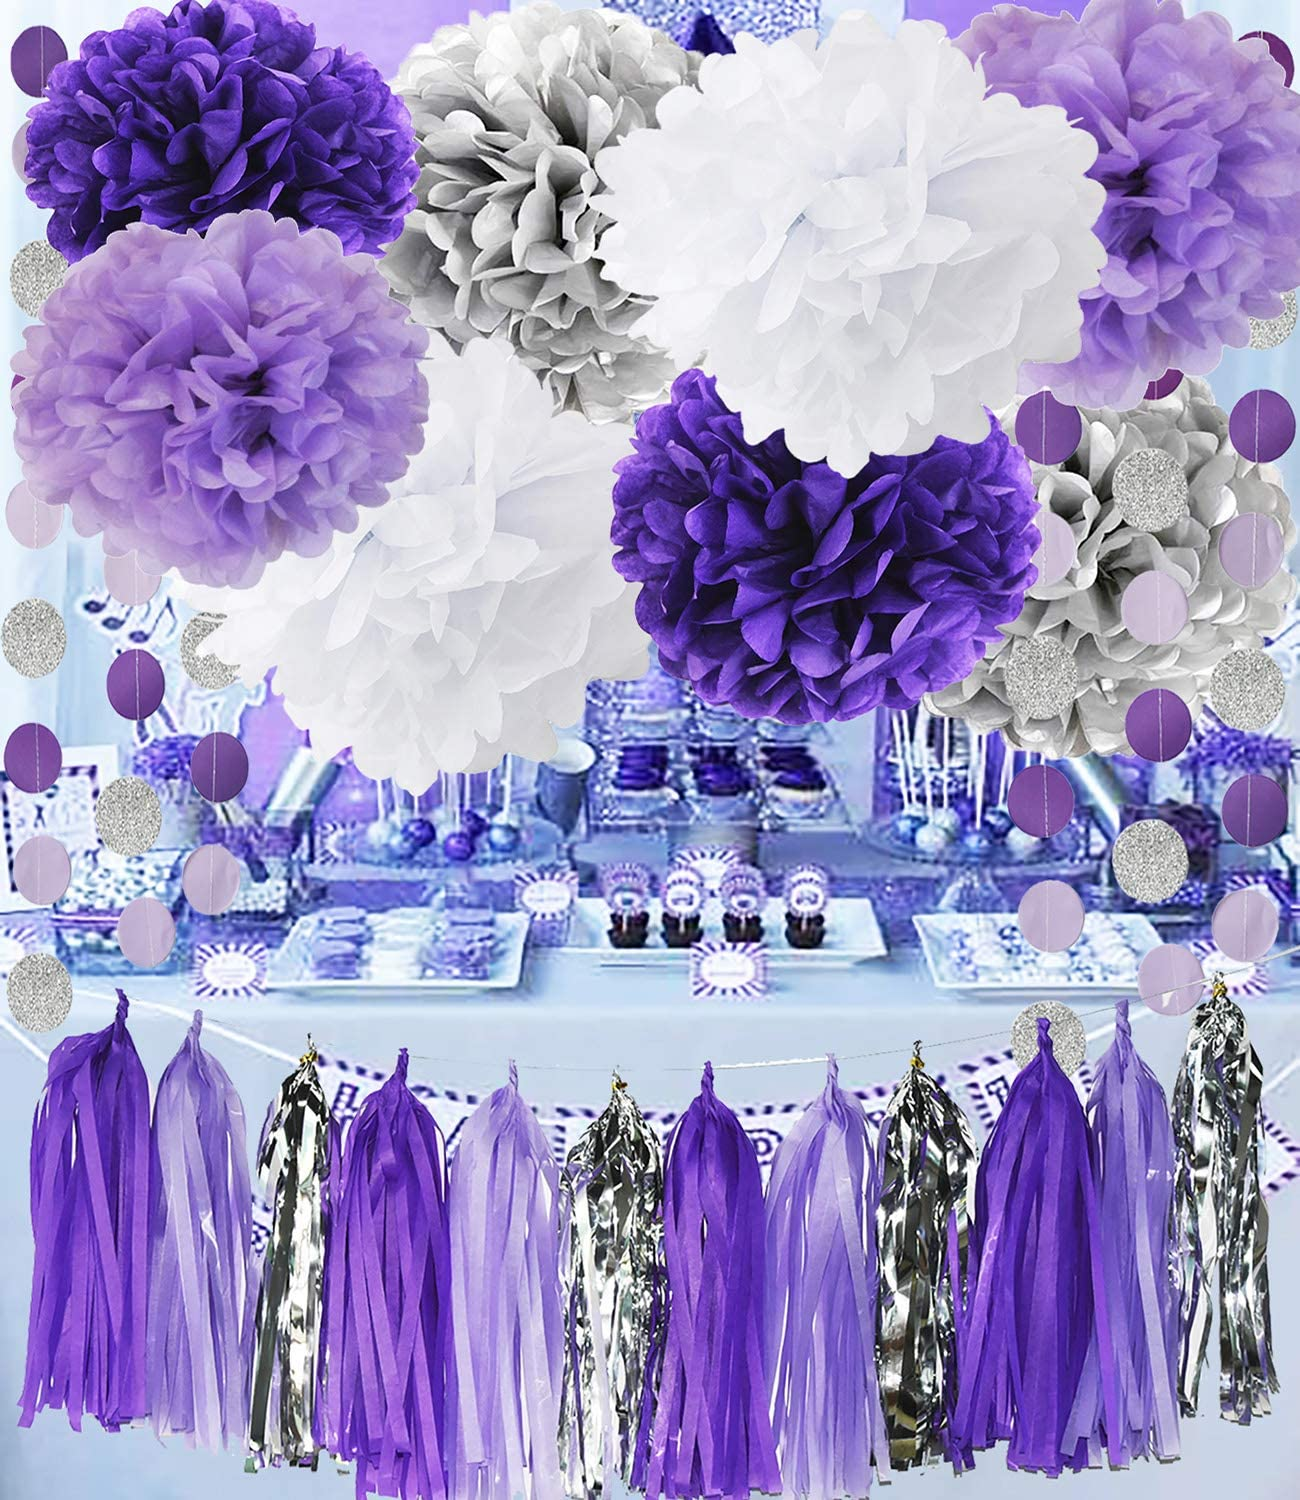 Purple Silver Birthday Decorations for Women Bridal Shower Decorations Purple White Silver Tissue Pom Pom Purple Silver Circle Paper Garland for Baby Shower Decorations/Purple Birthday Decorations